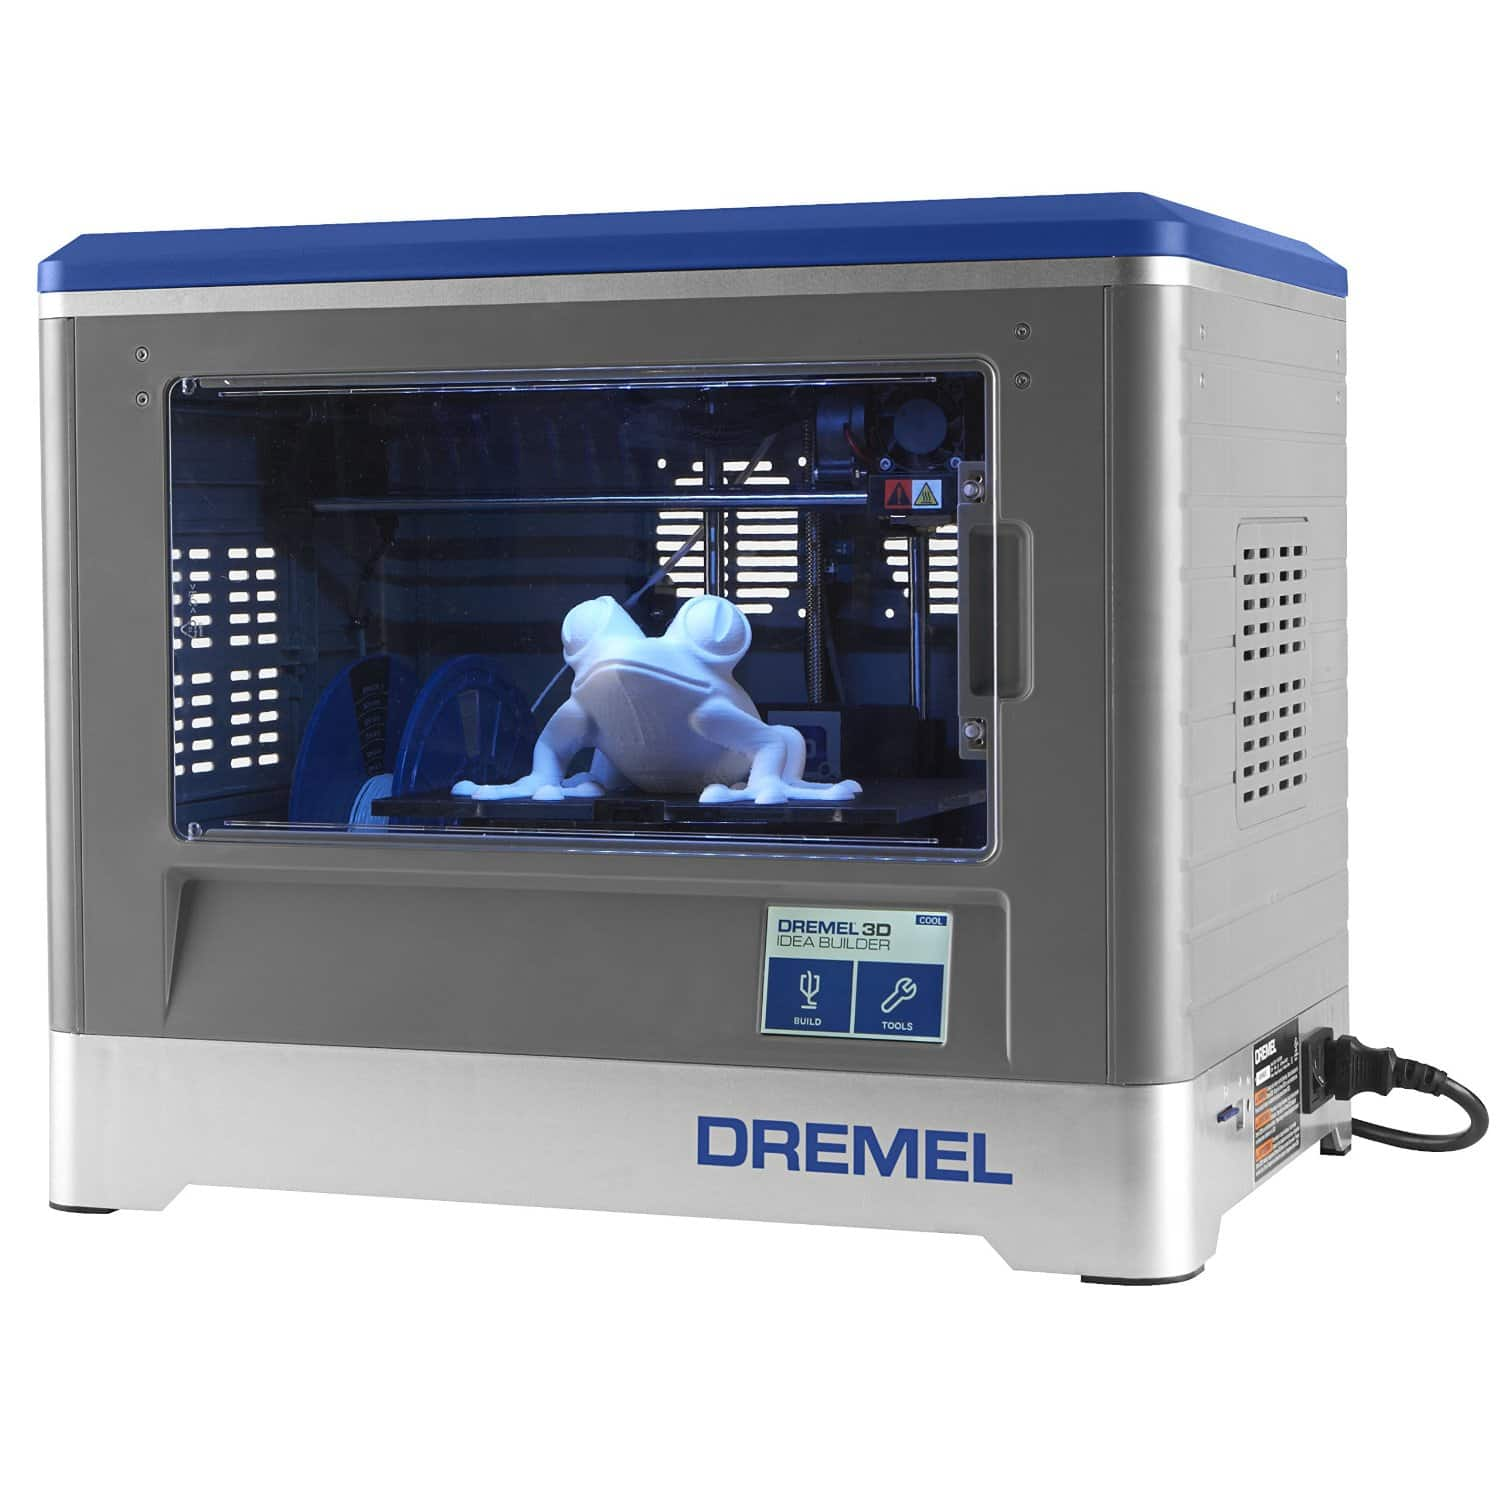 Dremel Digilab 3D20 3D Printer, Idea Builder for Brand New Hobbyists and Tinkerers Lowest per CCC $419